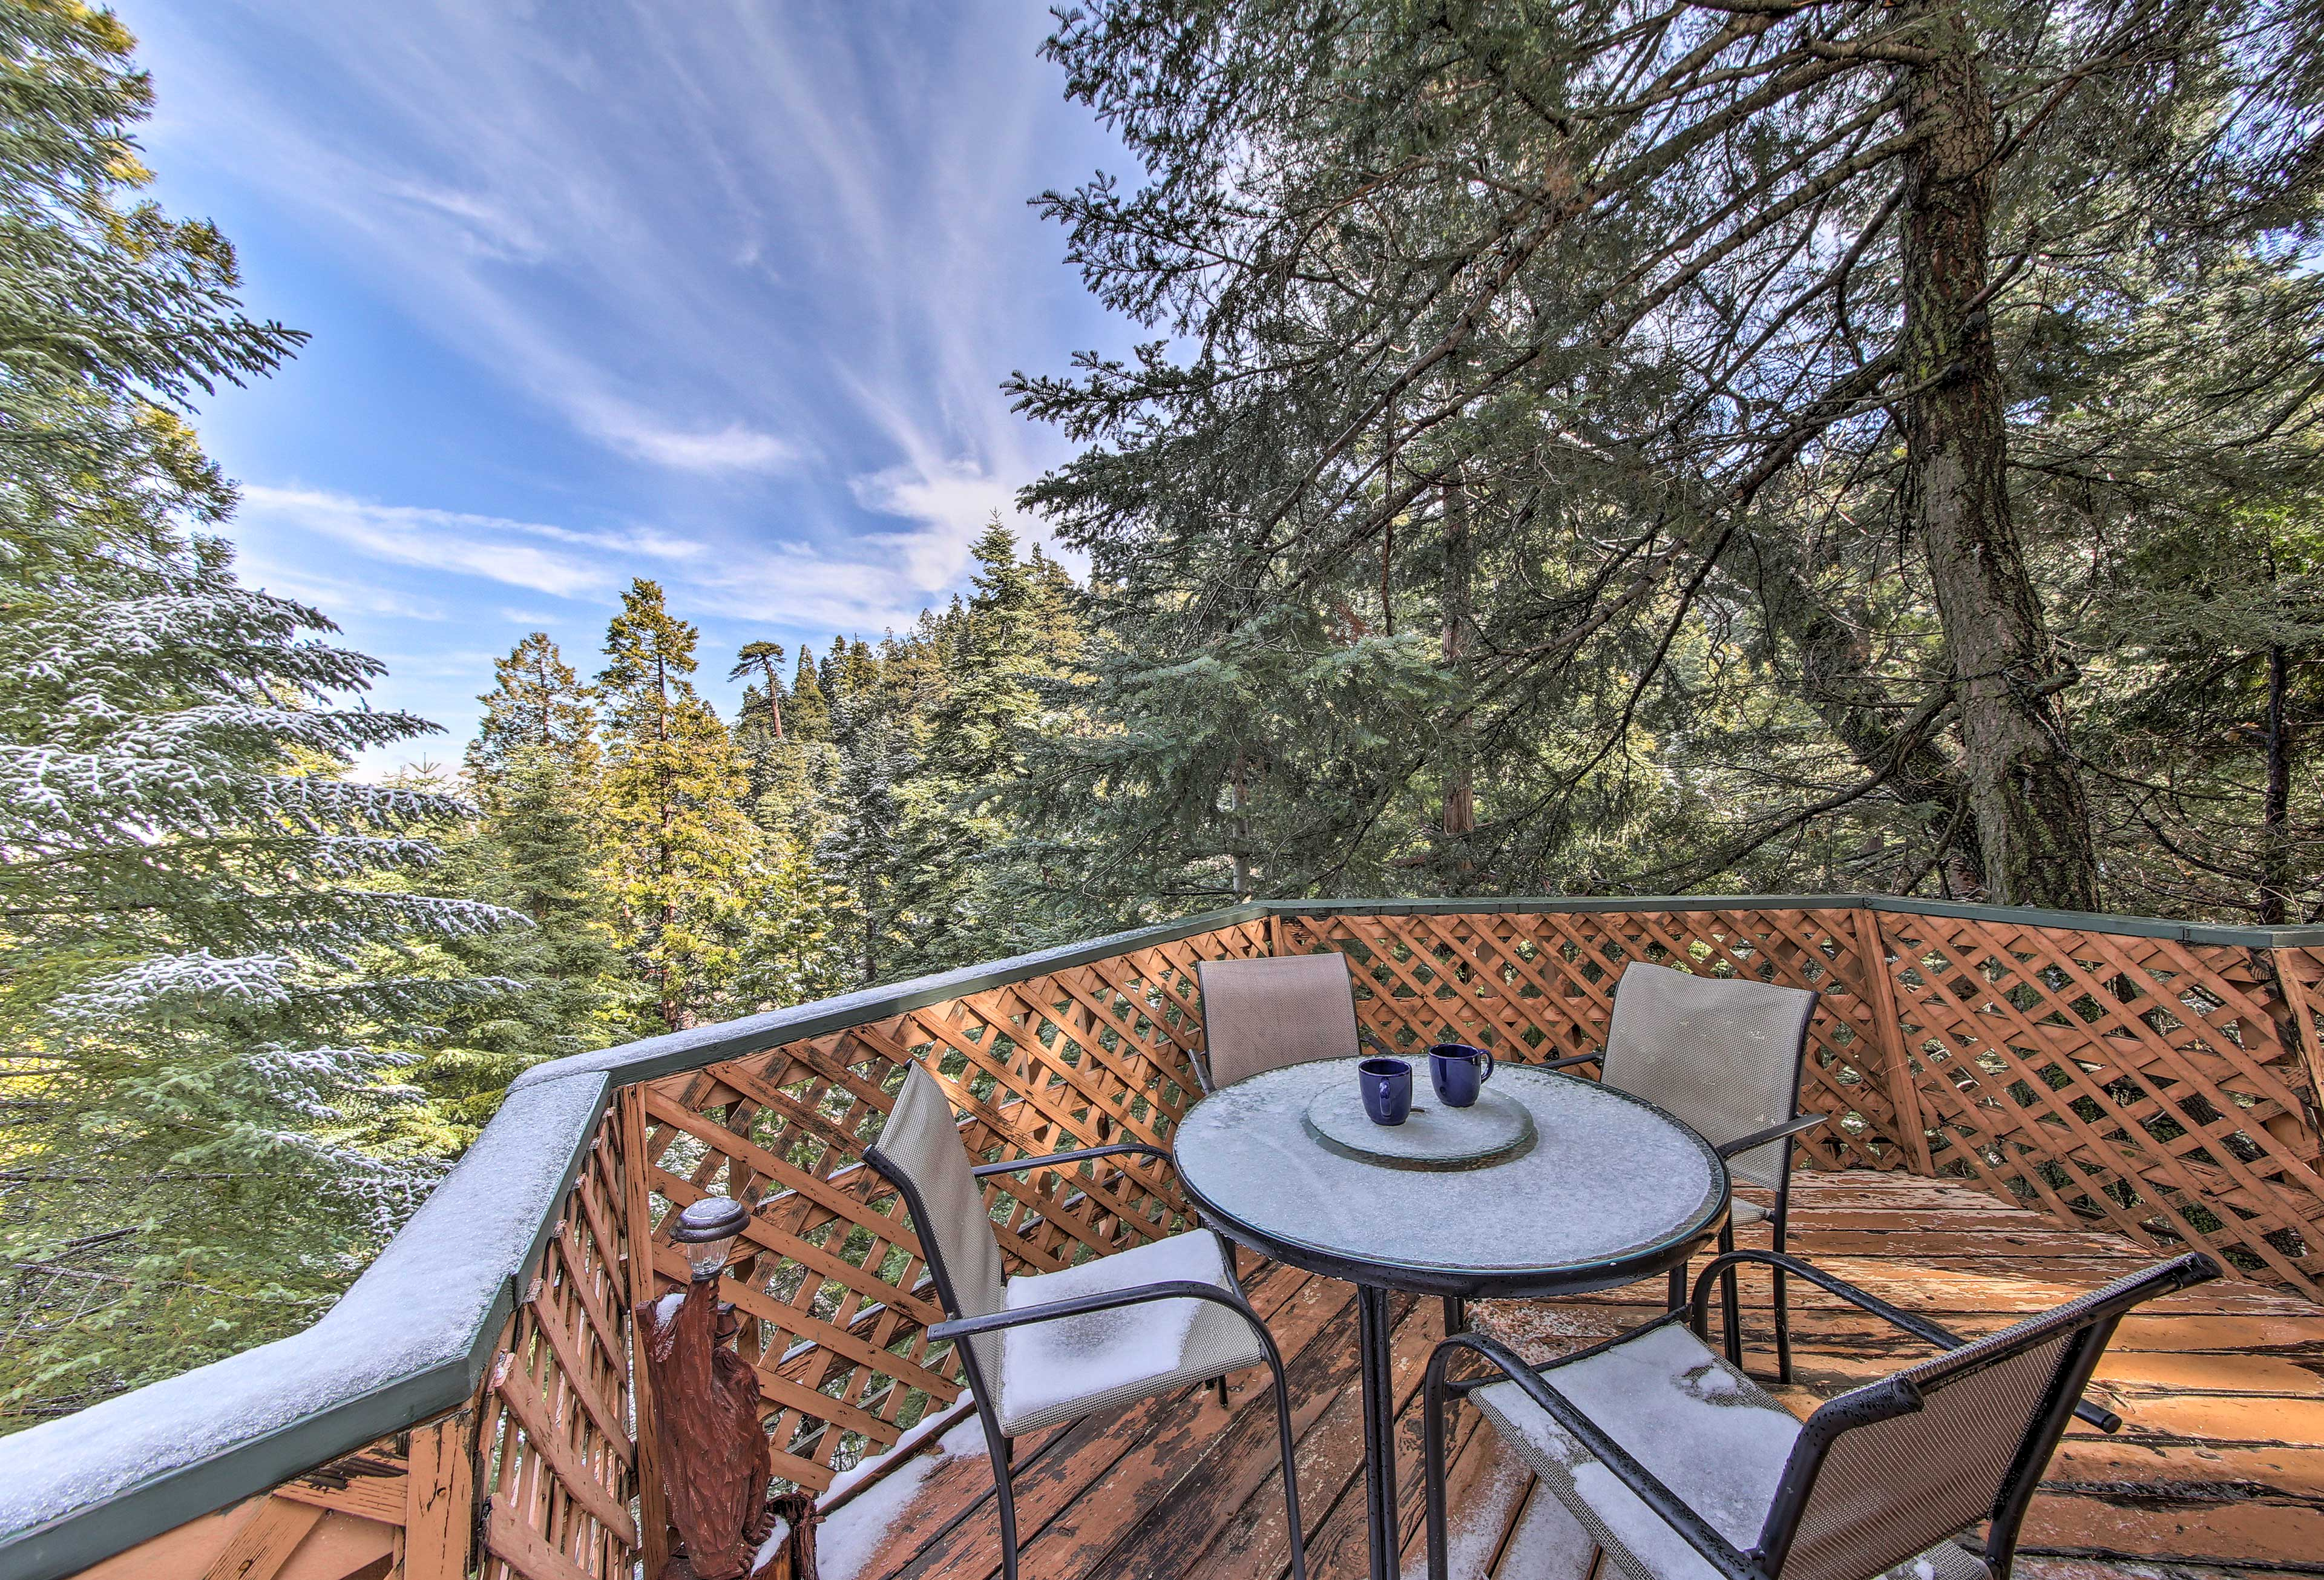 Up to 8 travelers will enjoy scenic forest views from the outdoor deck.